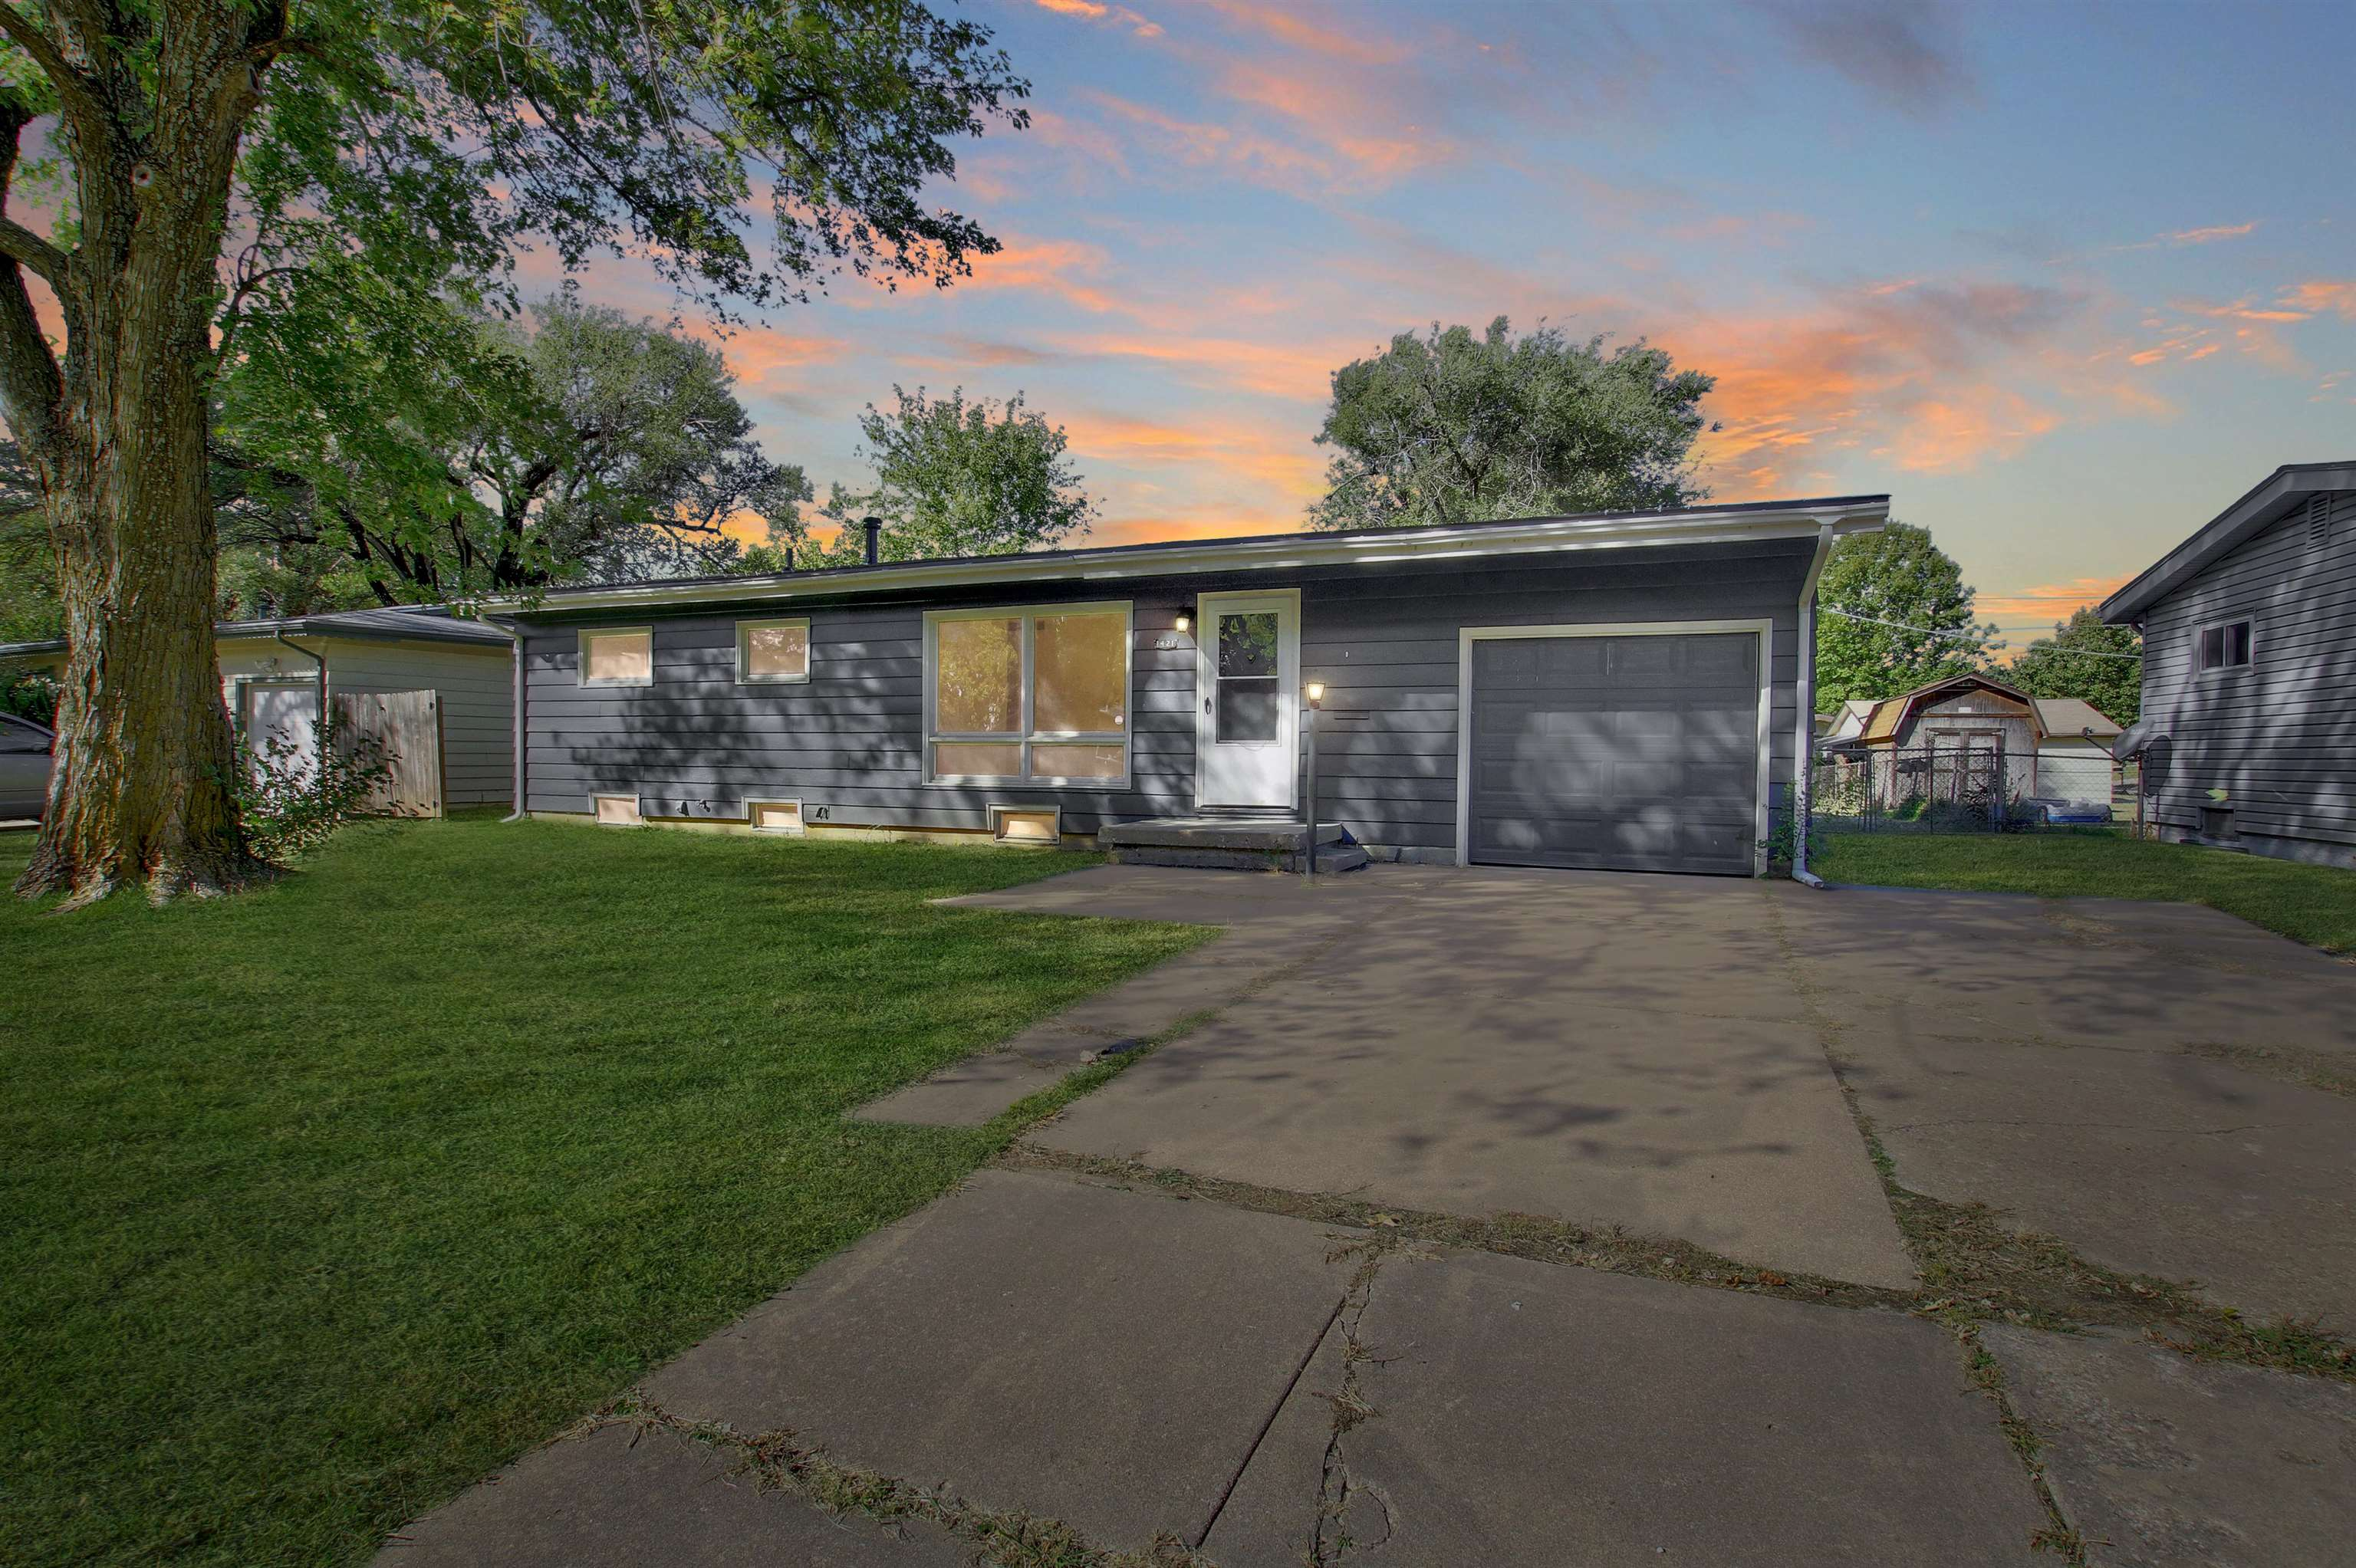 Tons of updates/upgrades in this Derby home!  The exterior has fresh paint, new roof decking, shingl